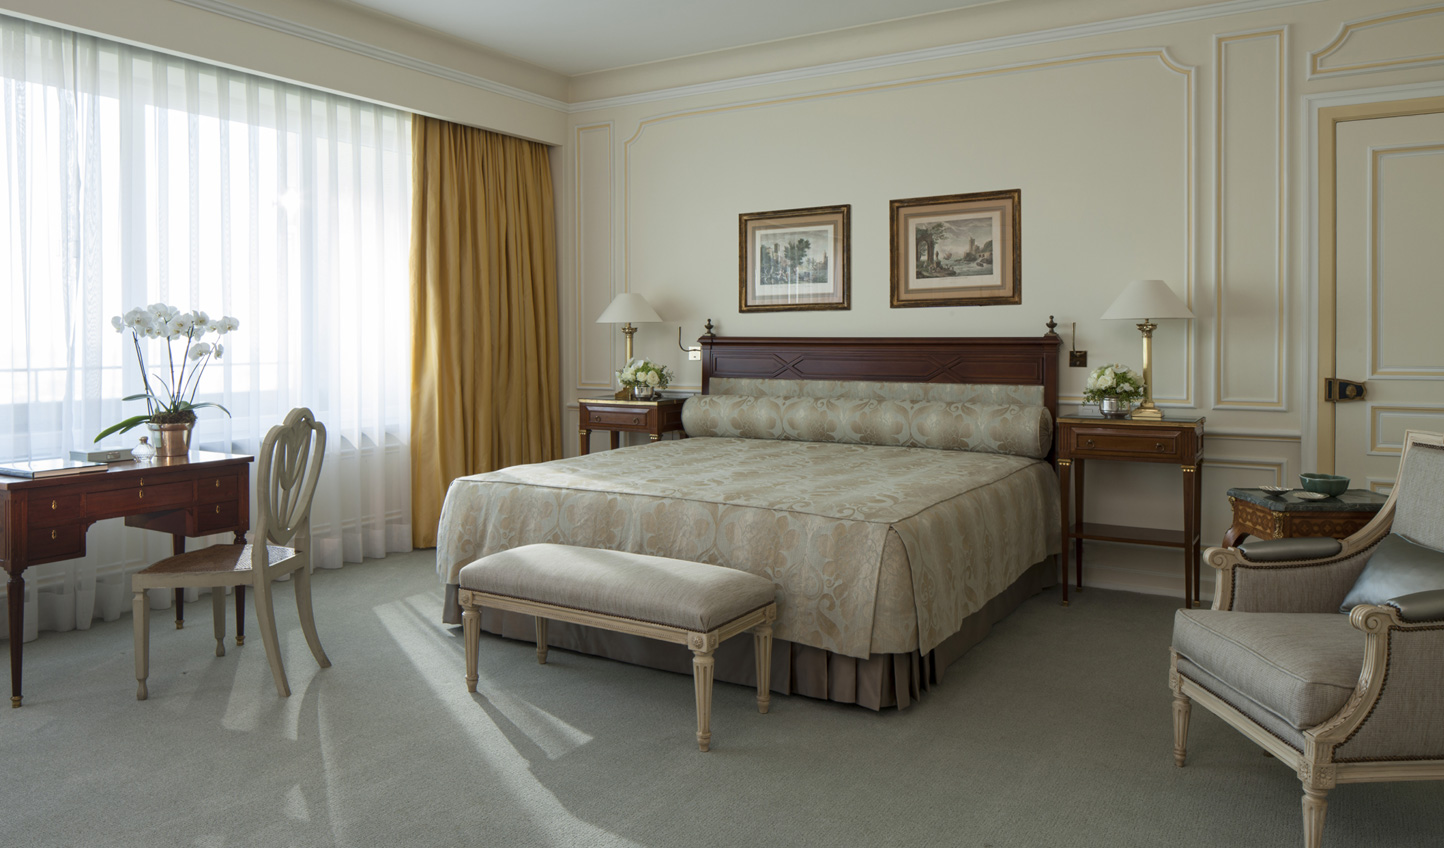 Classic elegance makes the Hotel Ritz one luxurious pick